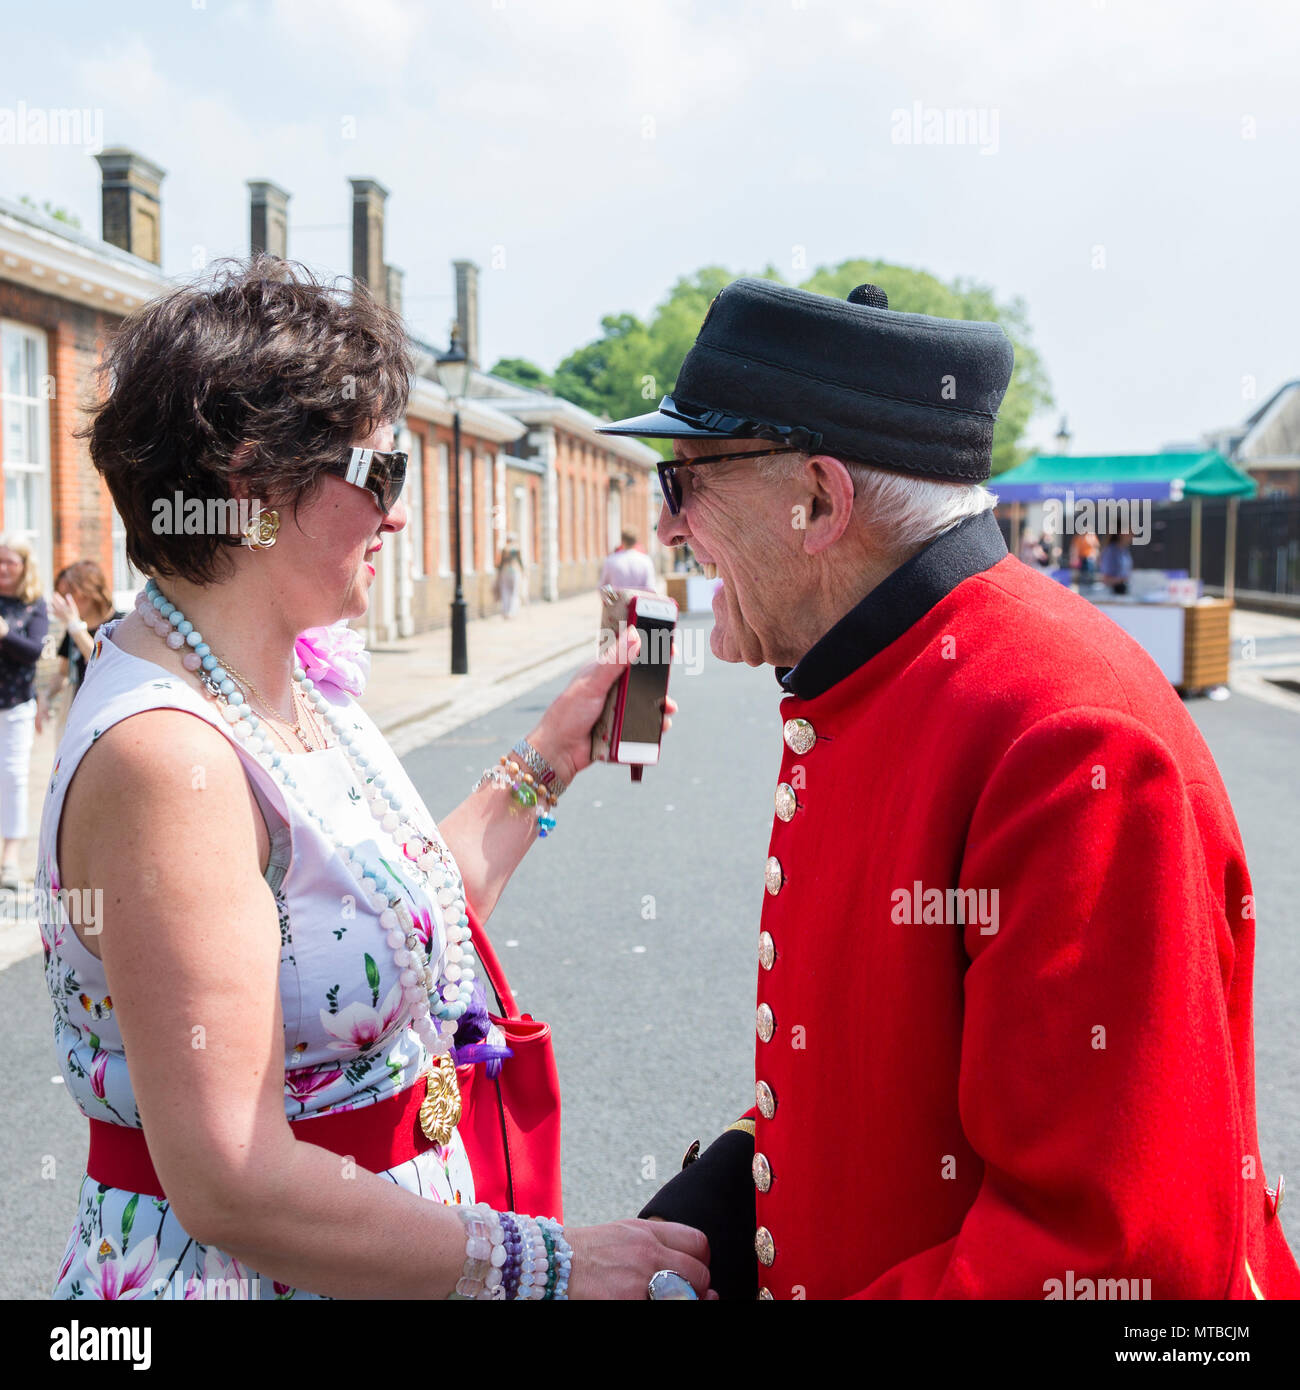 Chelsea Pensioner at Chelsea Flower Show, London Saturday 27th May 2018 - Stock Image